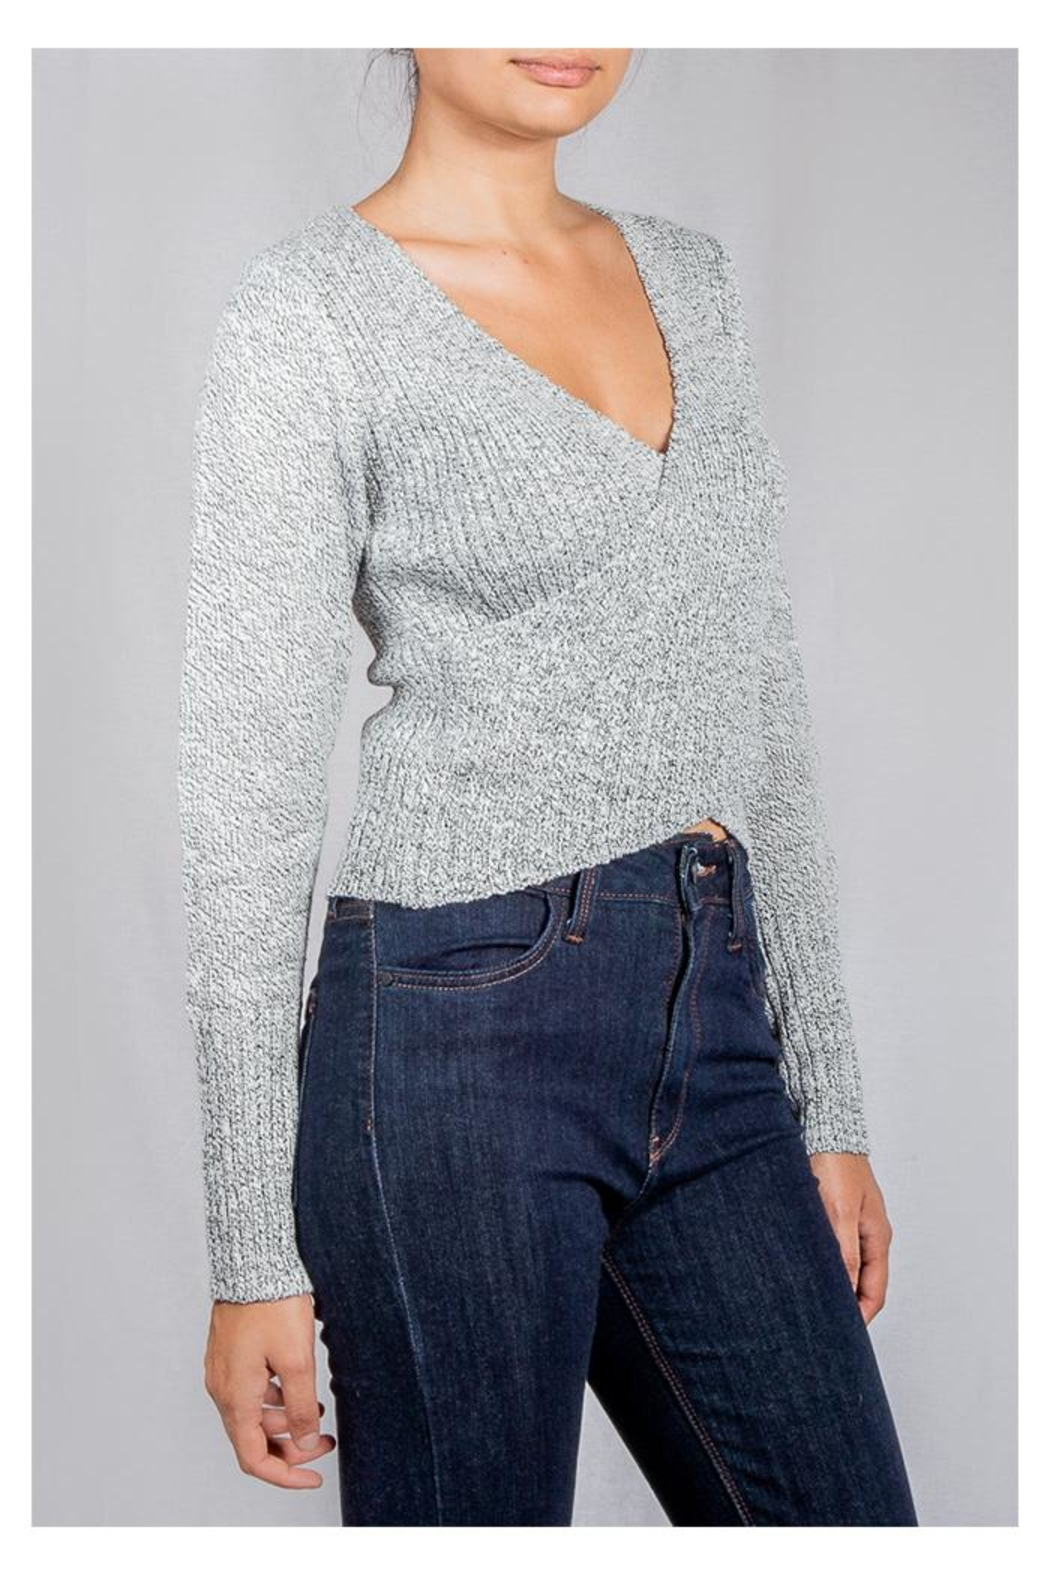 Lumiere Grey Wrap Sweater-Top - Front Full Image